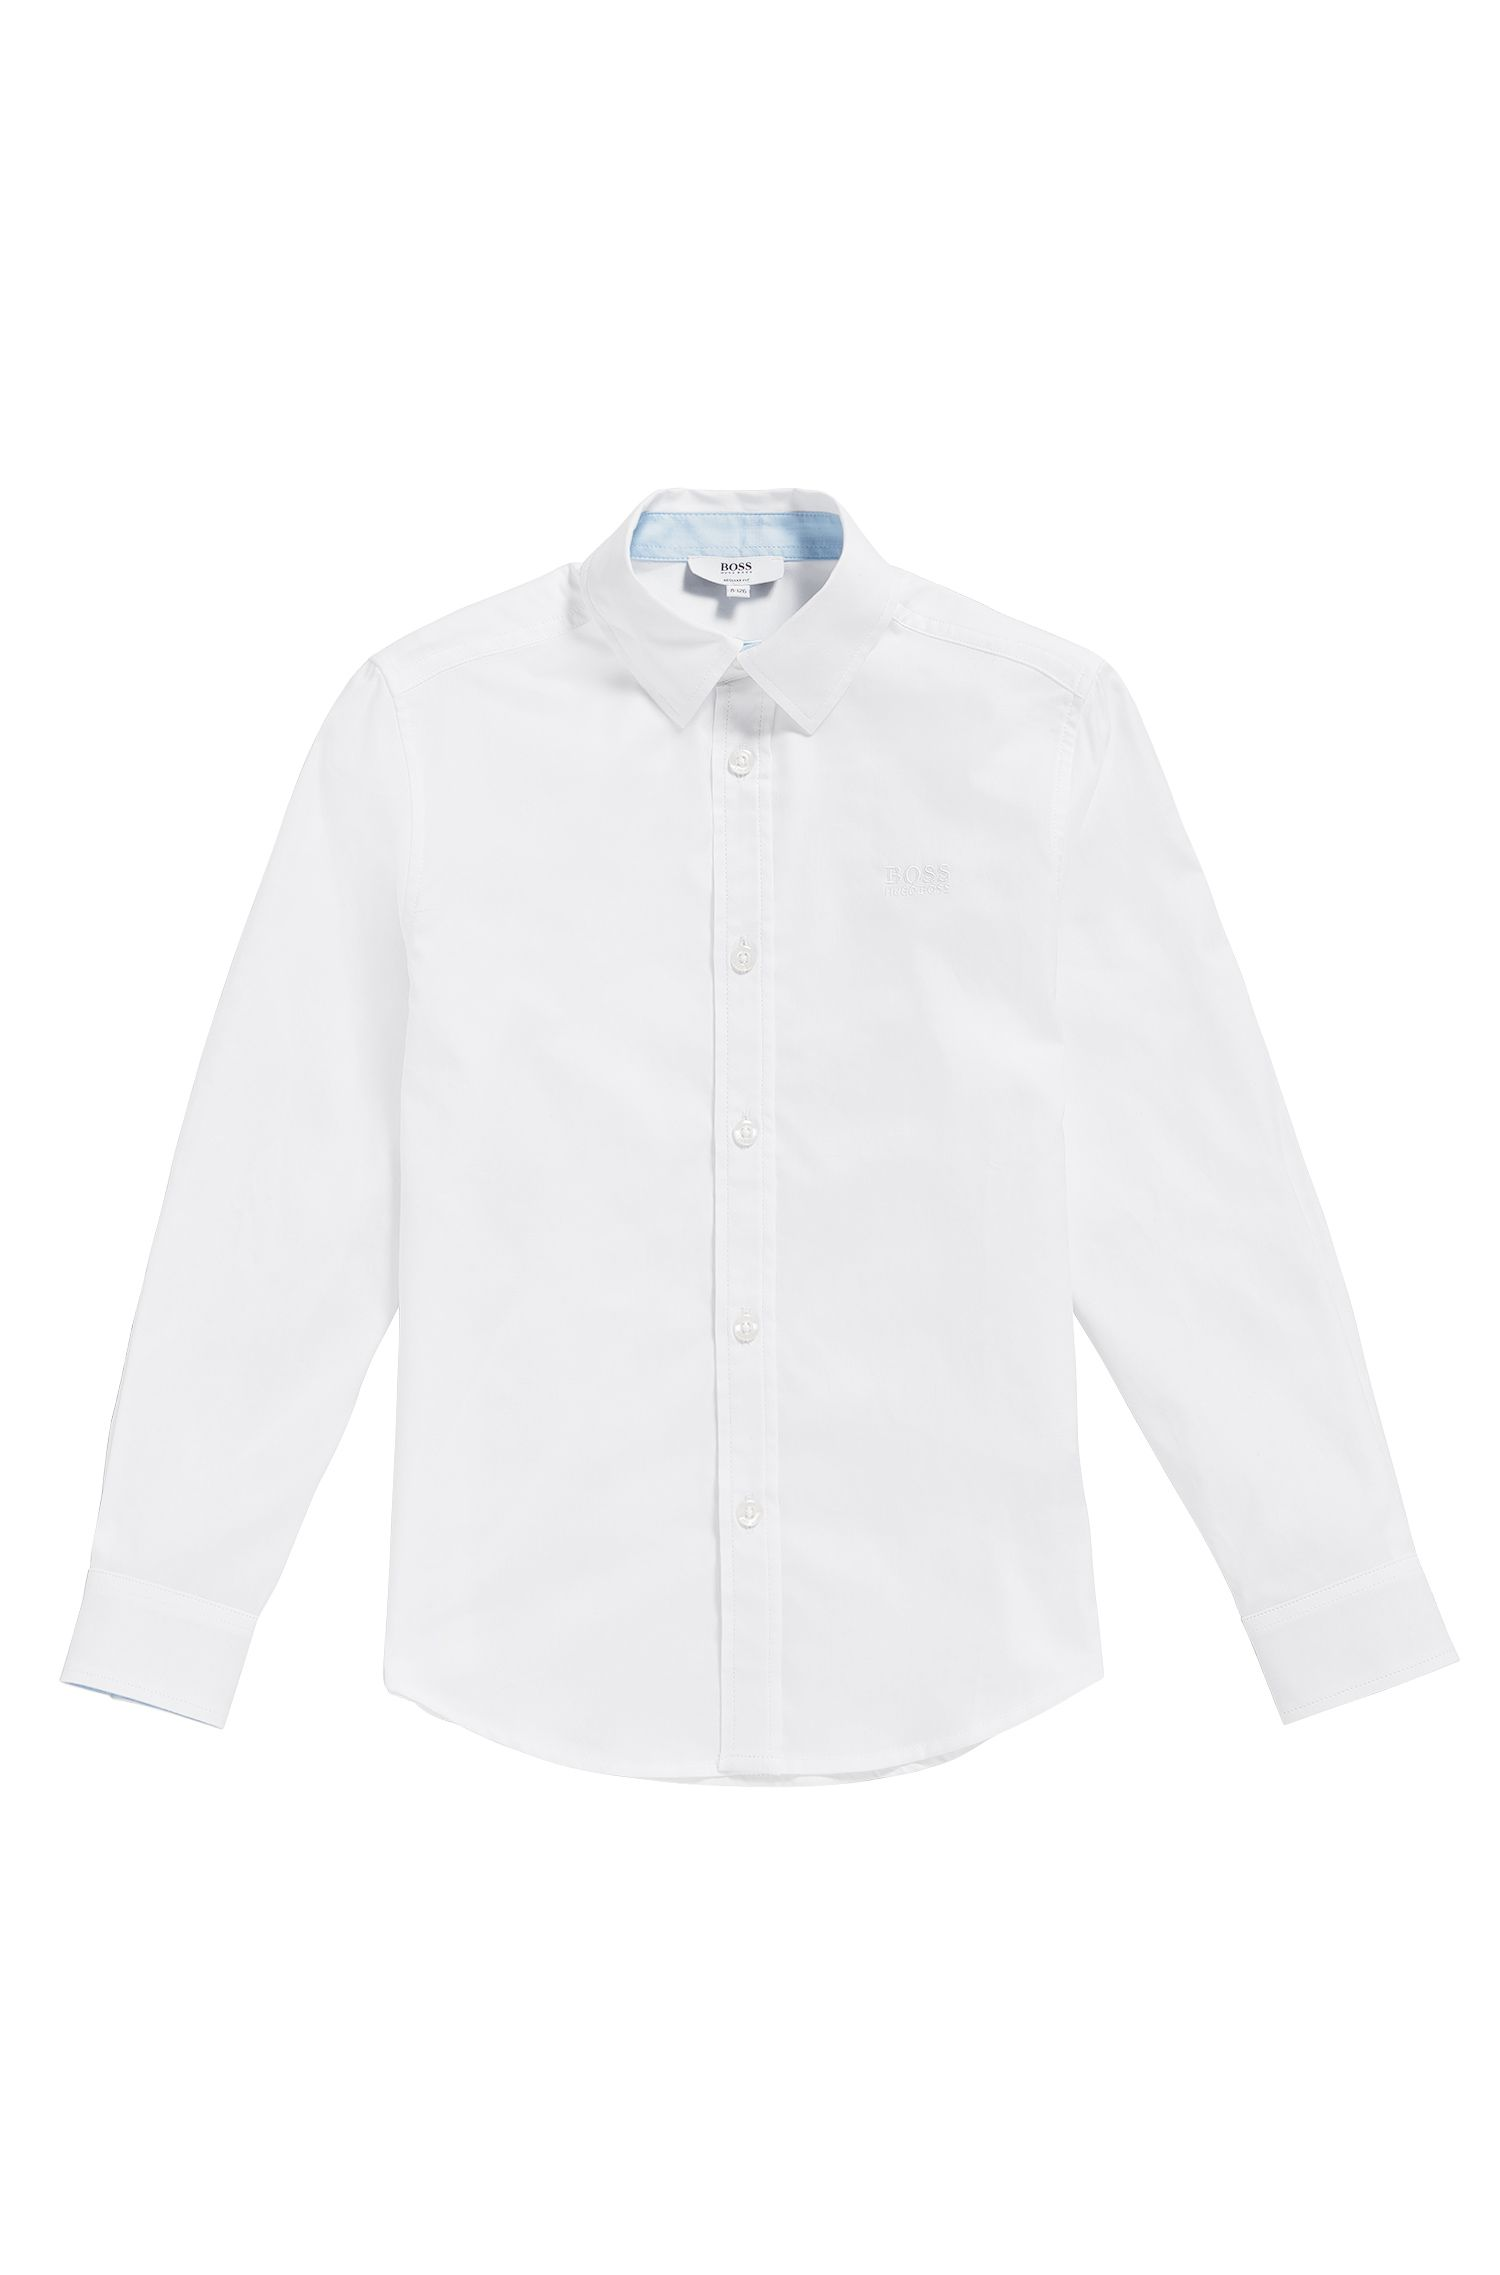 Kids' shirt in lightly textured cotton: 'J25P03'